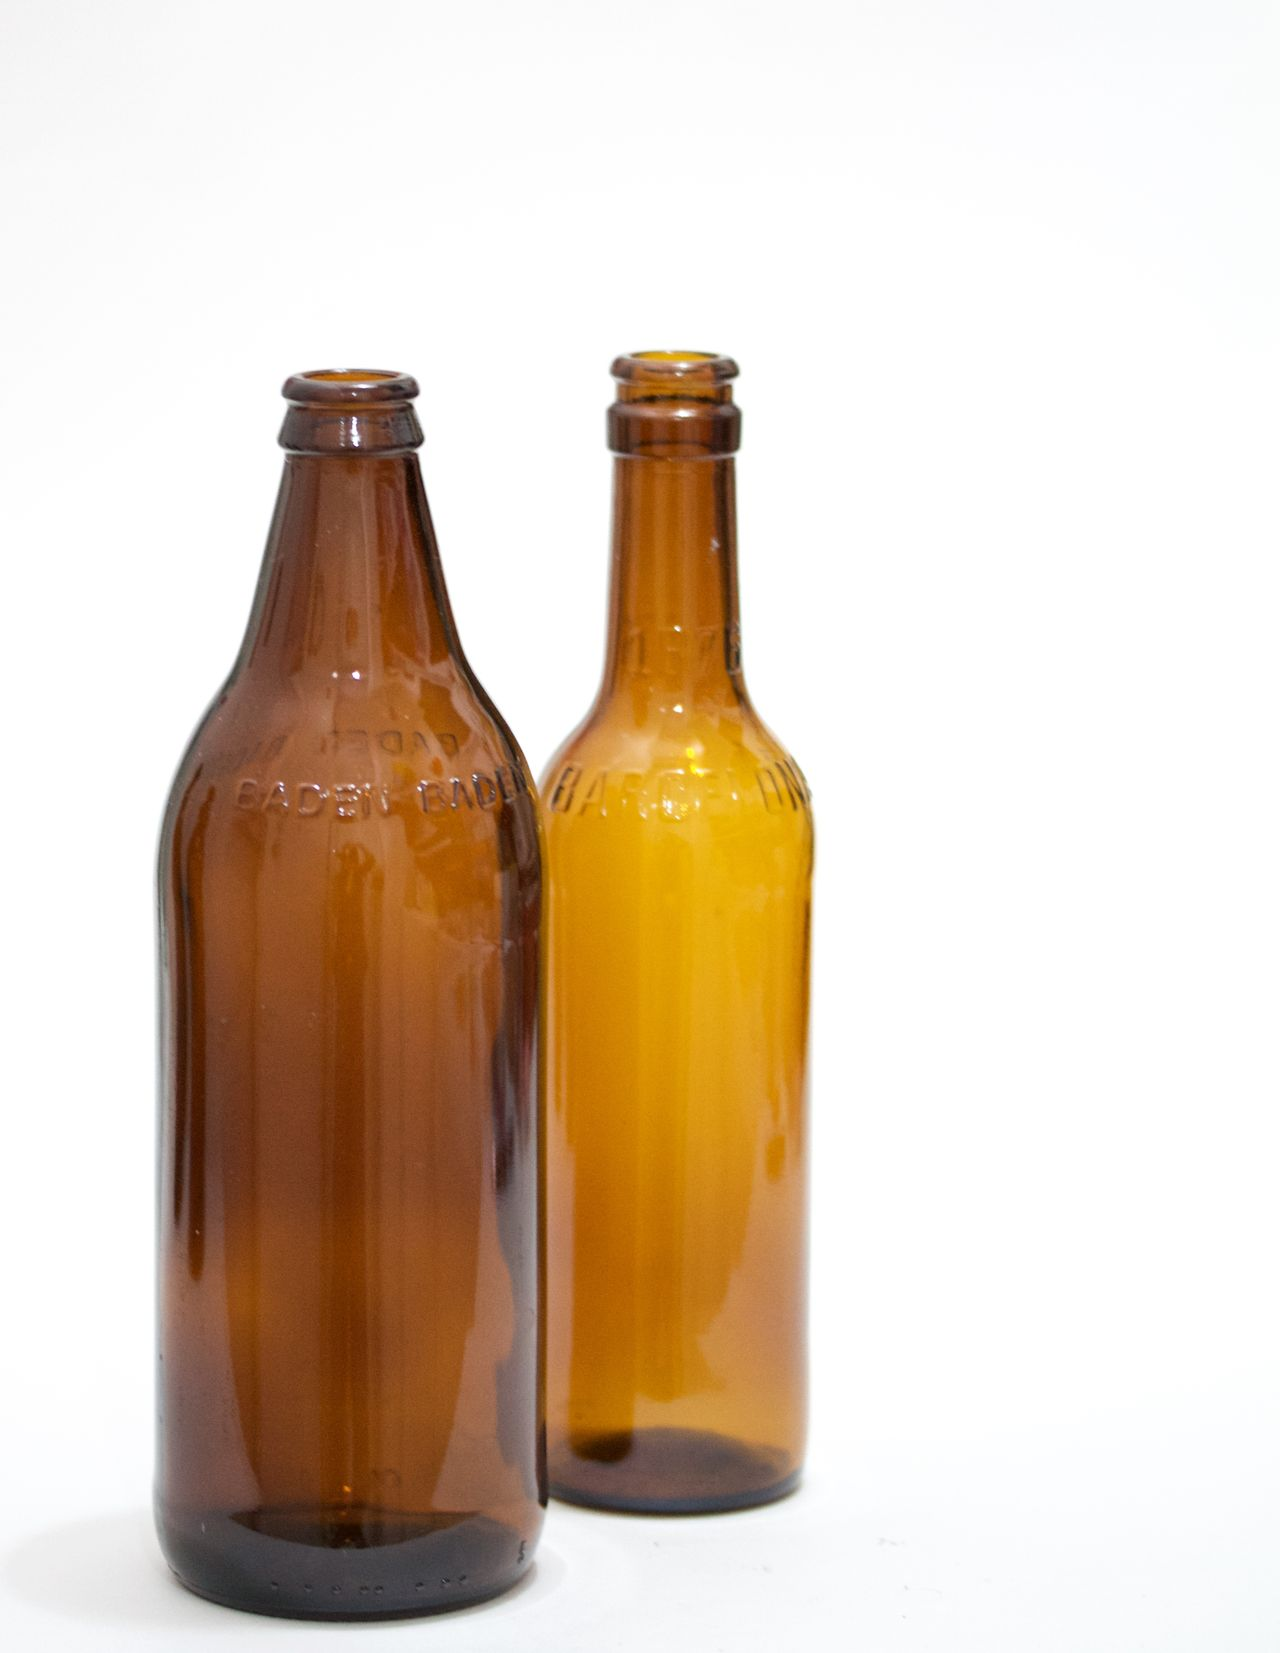 two brown bottles on white background Beer Bottle Brown Bottles Day Food Nature No People Studio Shot White Background